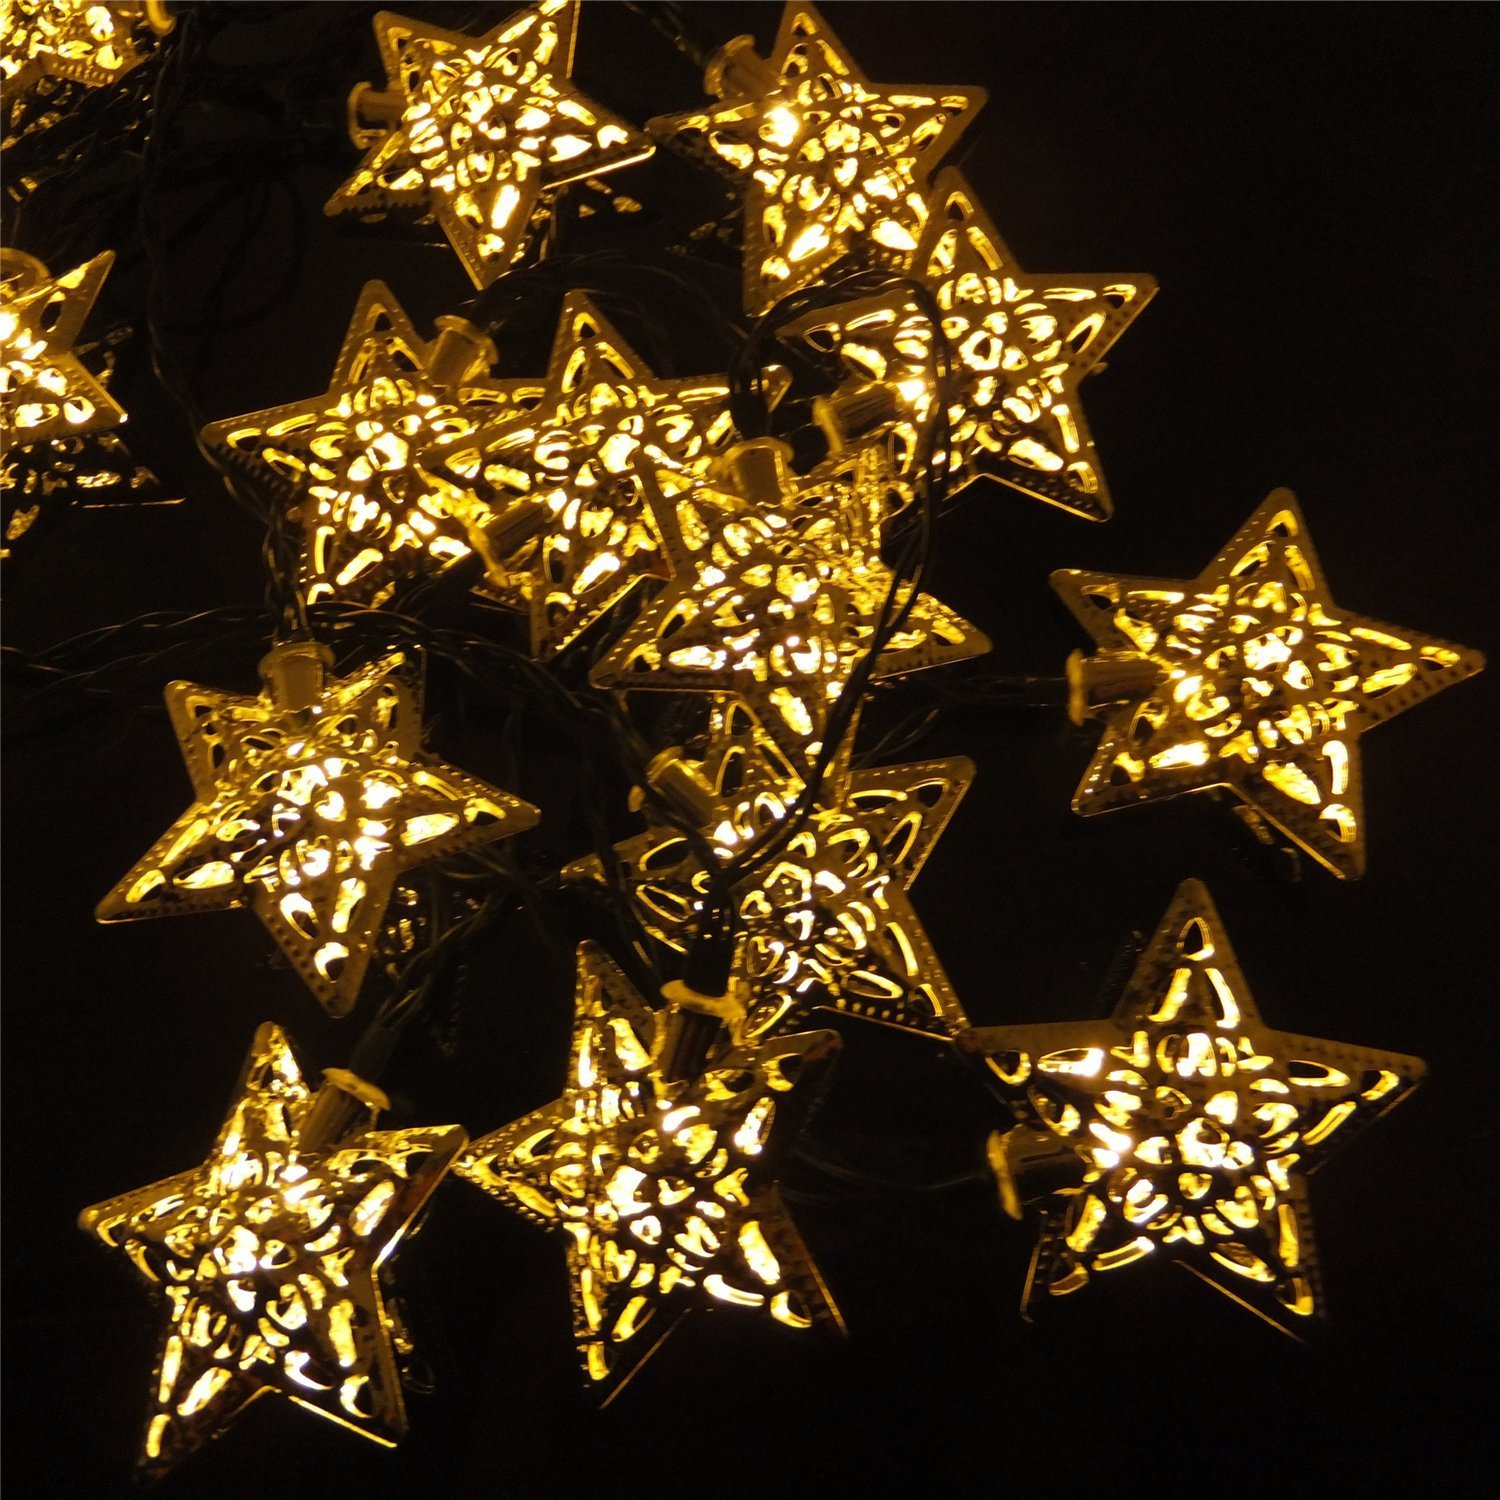 Unique String Lights Outdoor : Christmas Party Decor Solar Powered Silver Star LED String Lights Outdoor Garden